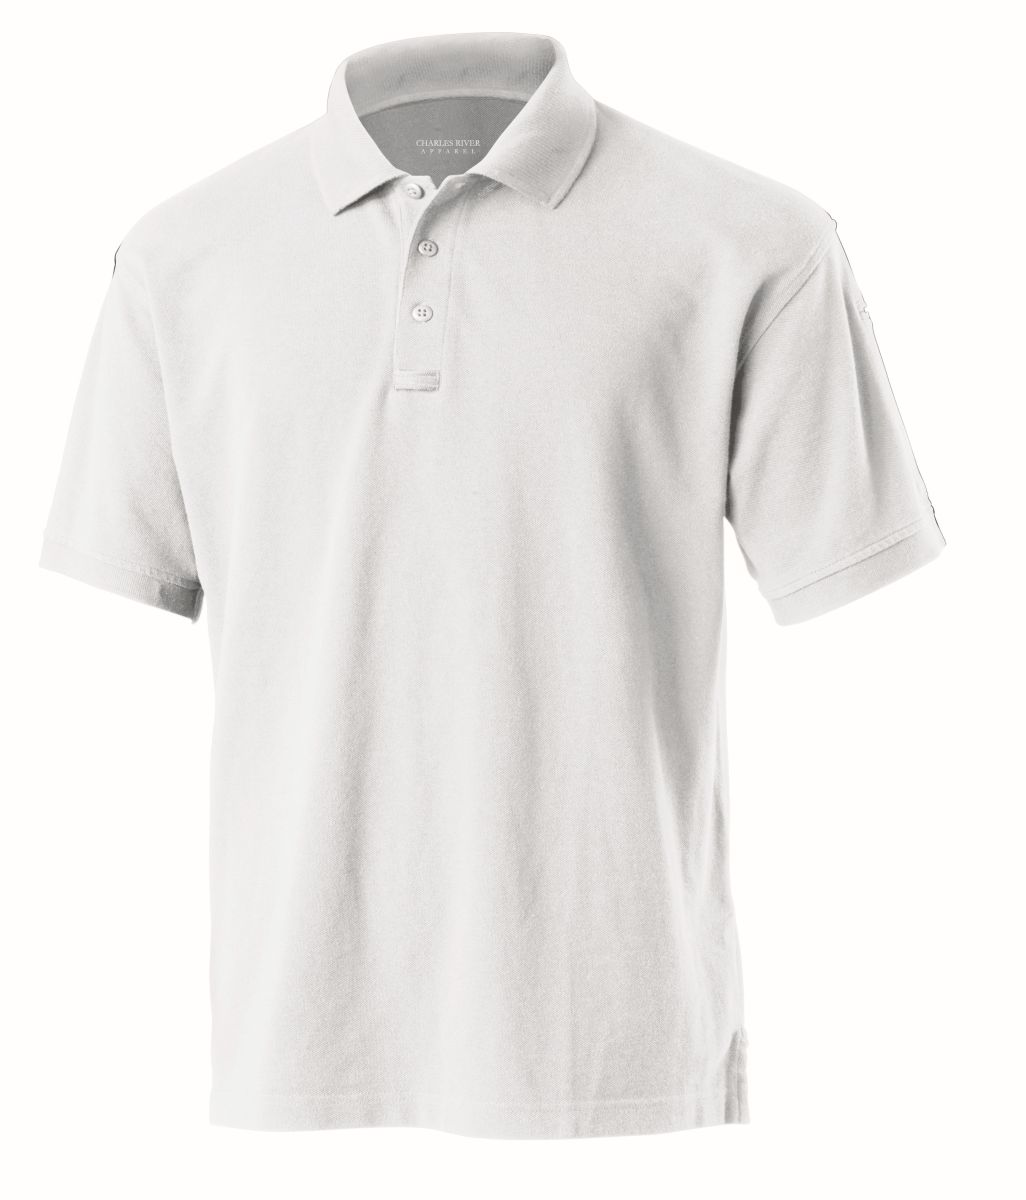 Men's Short Sleeve Allegiance Polo